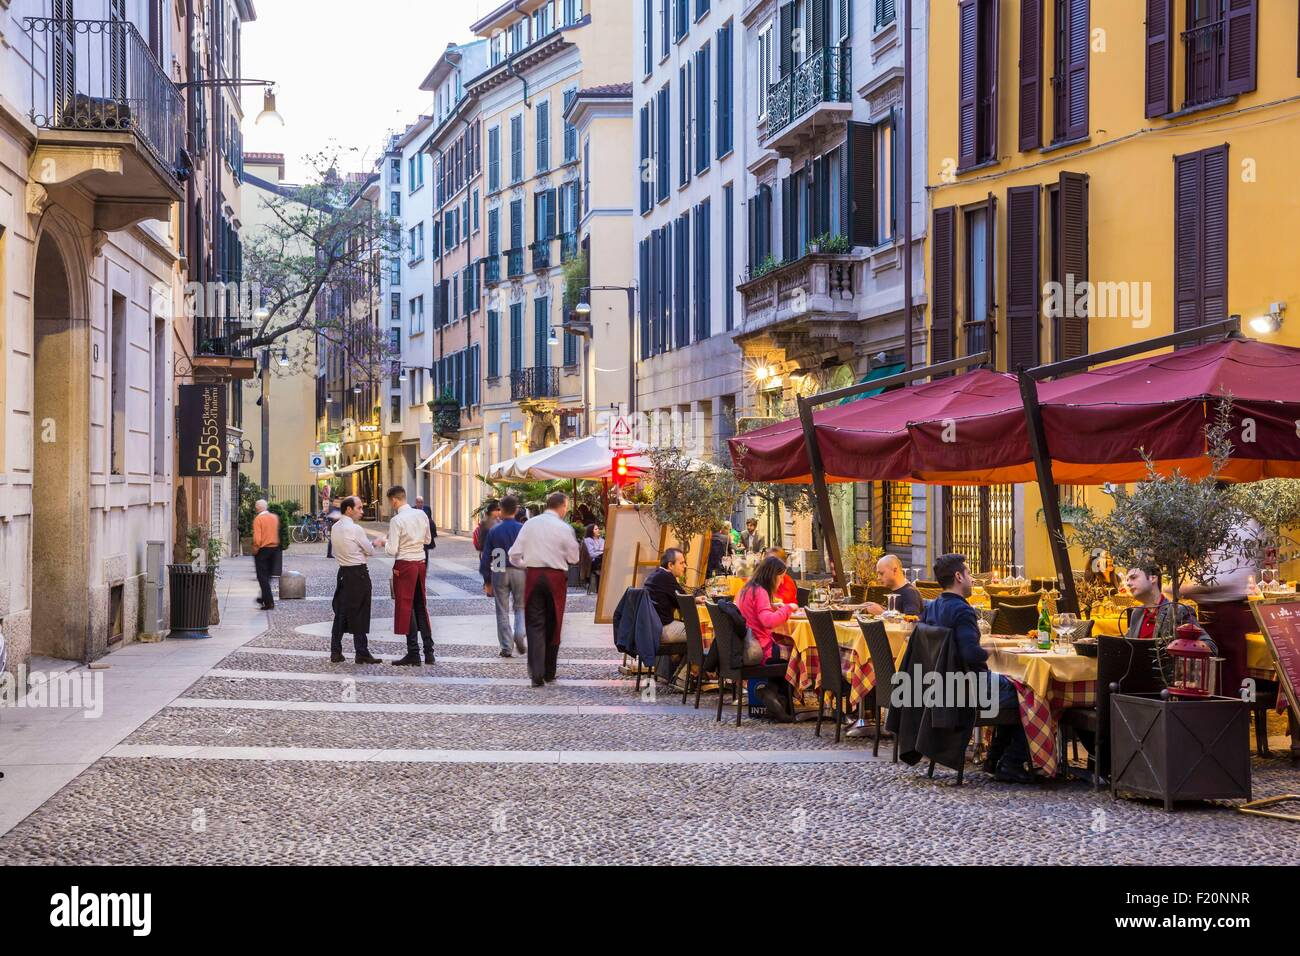 Italy, Lombardy, Milan, restaurant street via Marco Formentini Mengoni - Stock Image